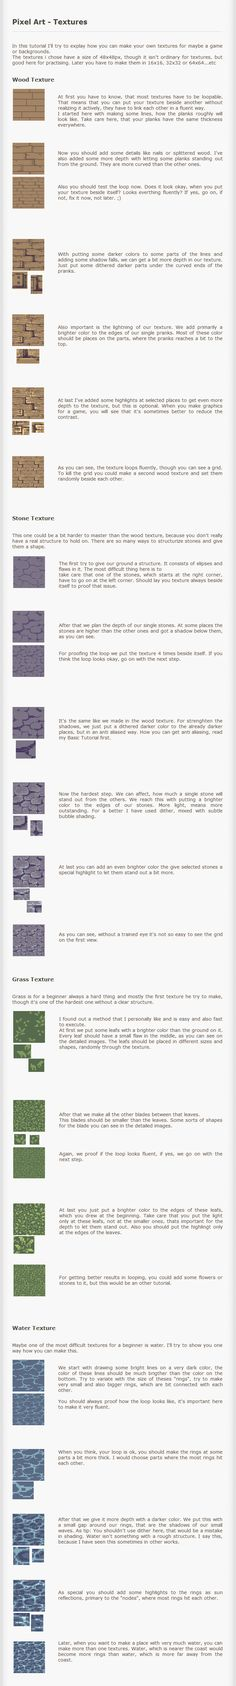 Pixel Art Tutorial - Textures by *Kiwinuptuo on deviantART ✤ || CHARACTER DESIGN REFERENCES | キャラクターデザイン |